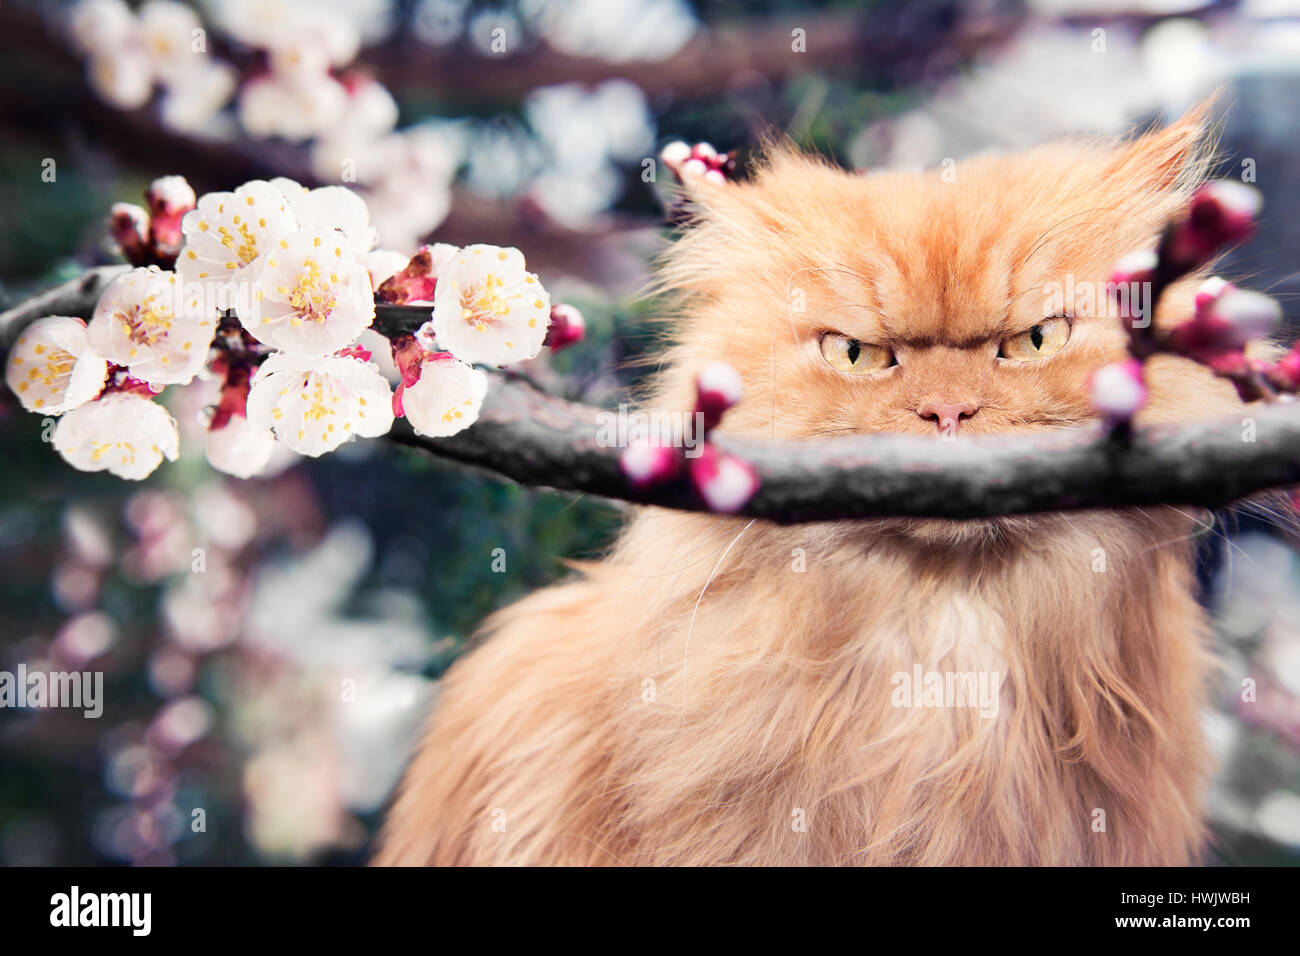 Persian cat with spring blooms - Stock Image